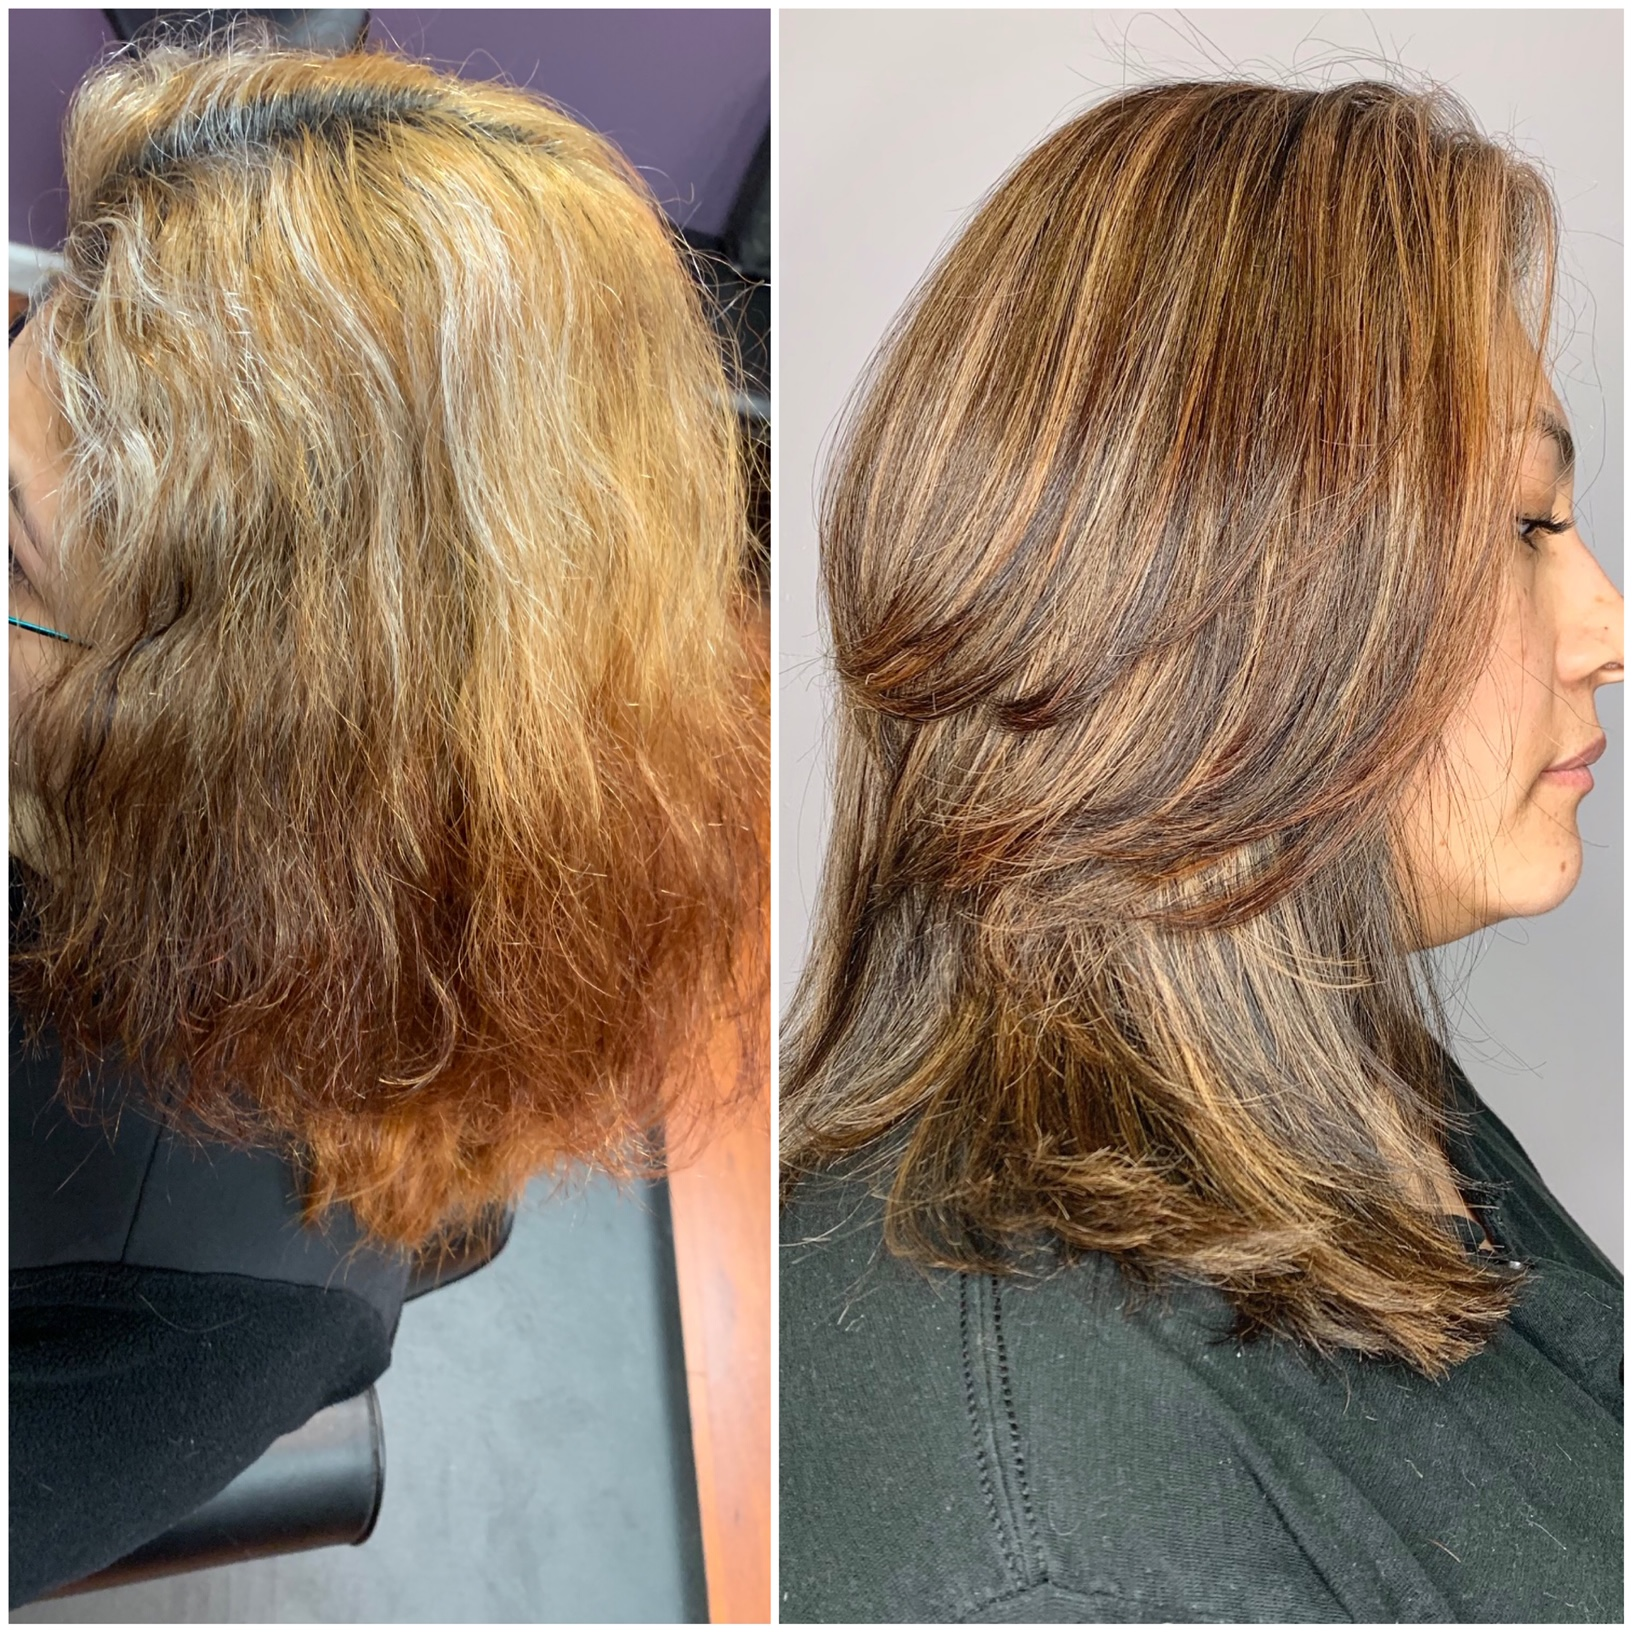 Makeover: Lift, Deposit, Fill and Neutralize For The Win!